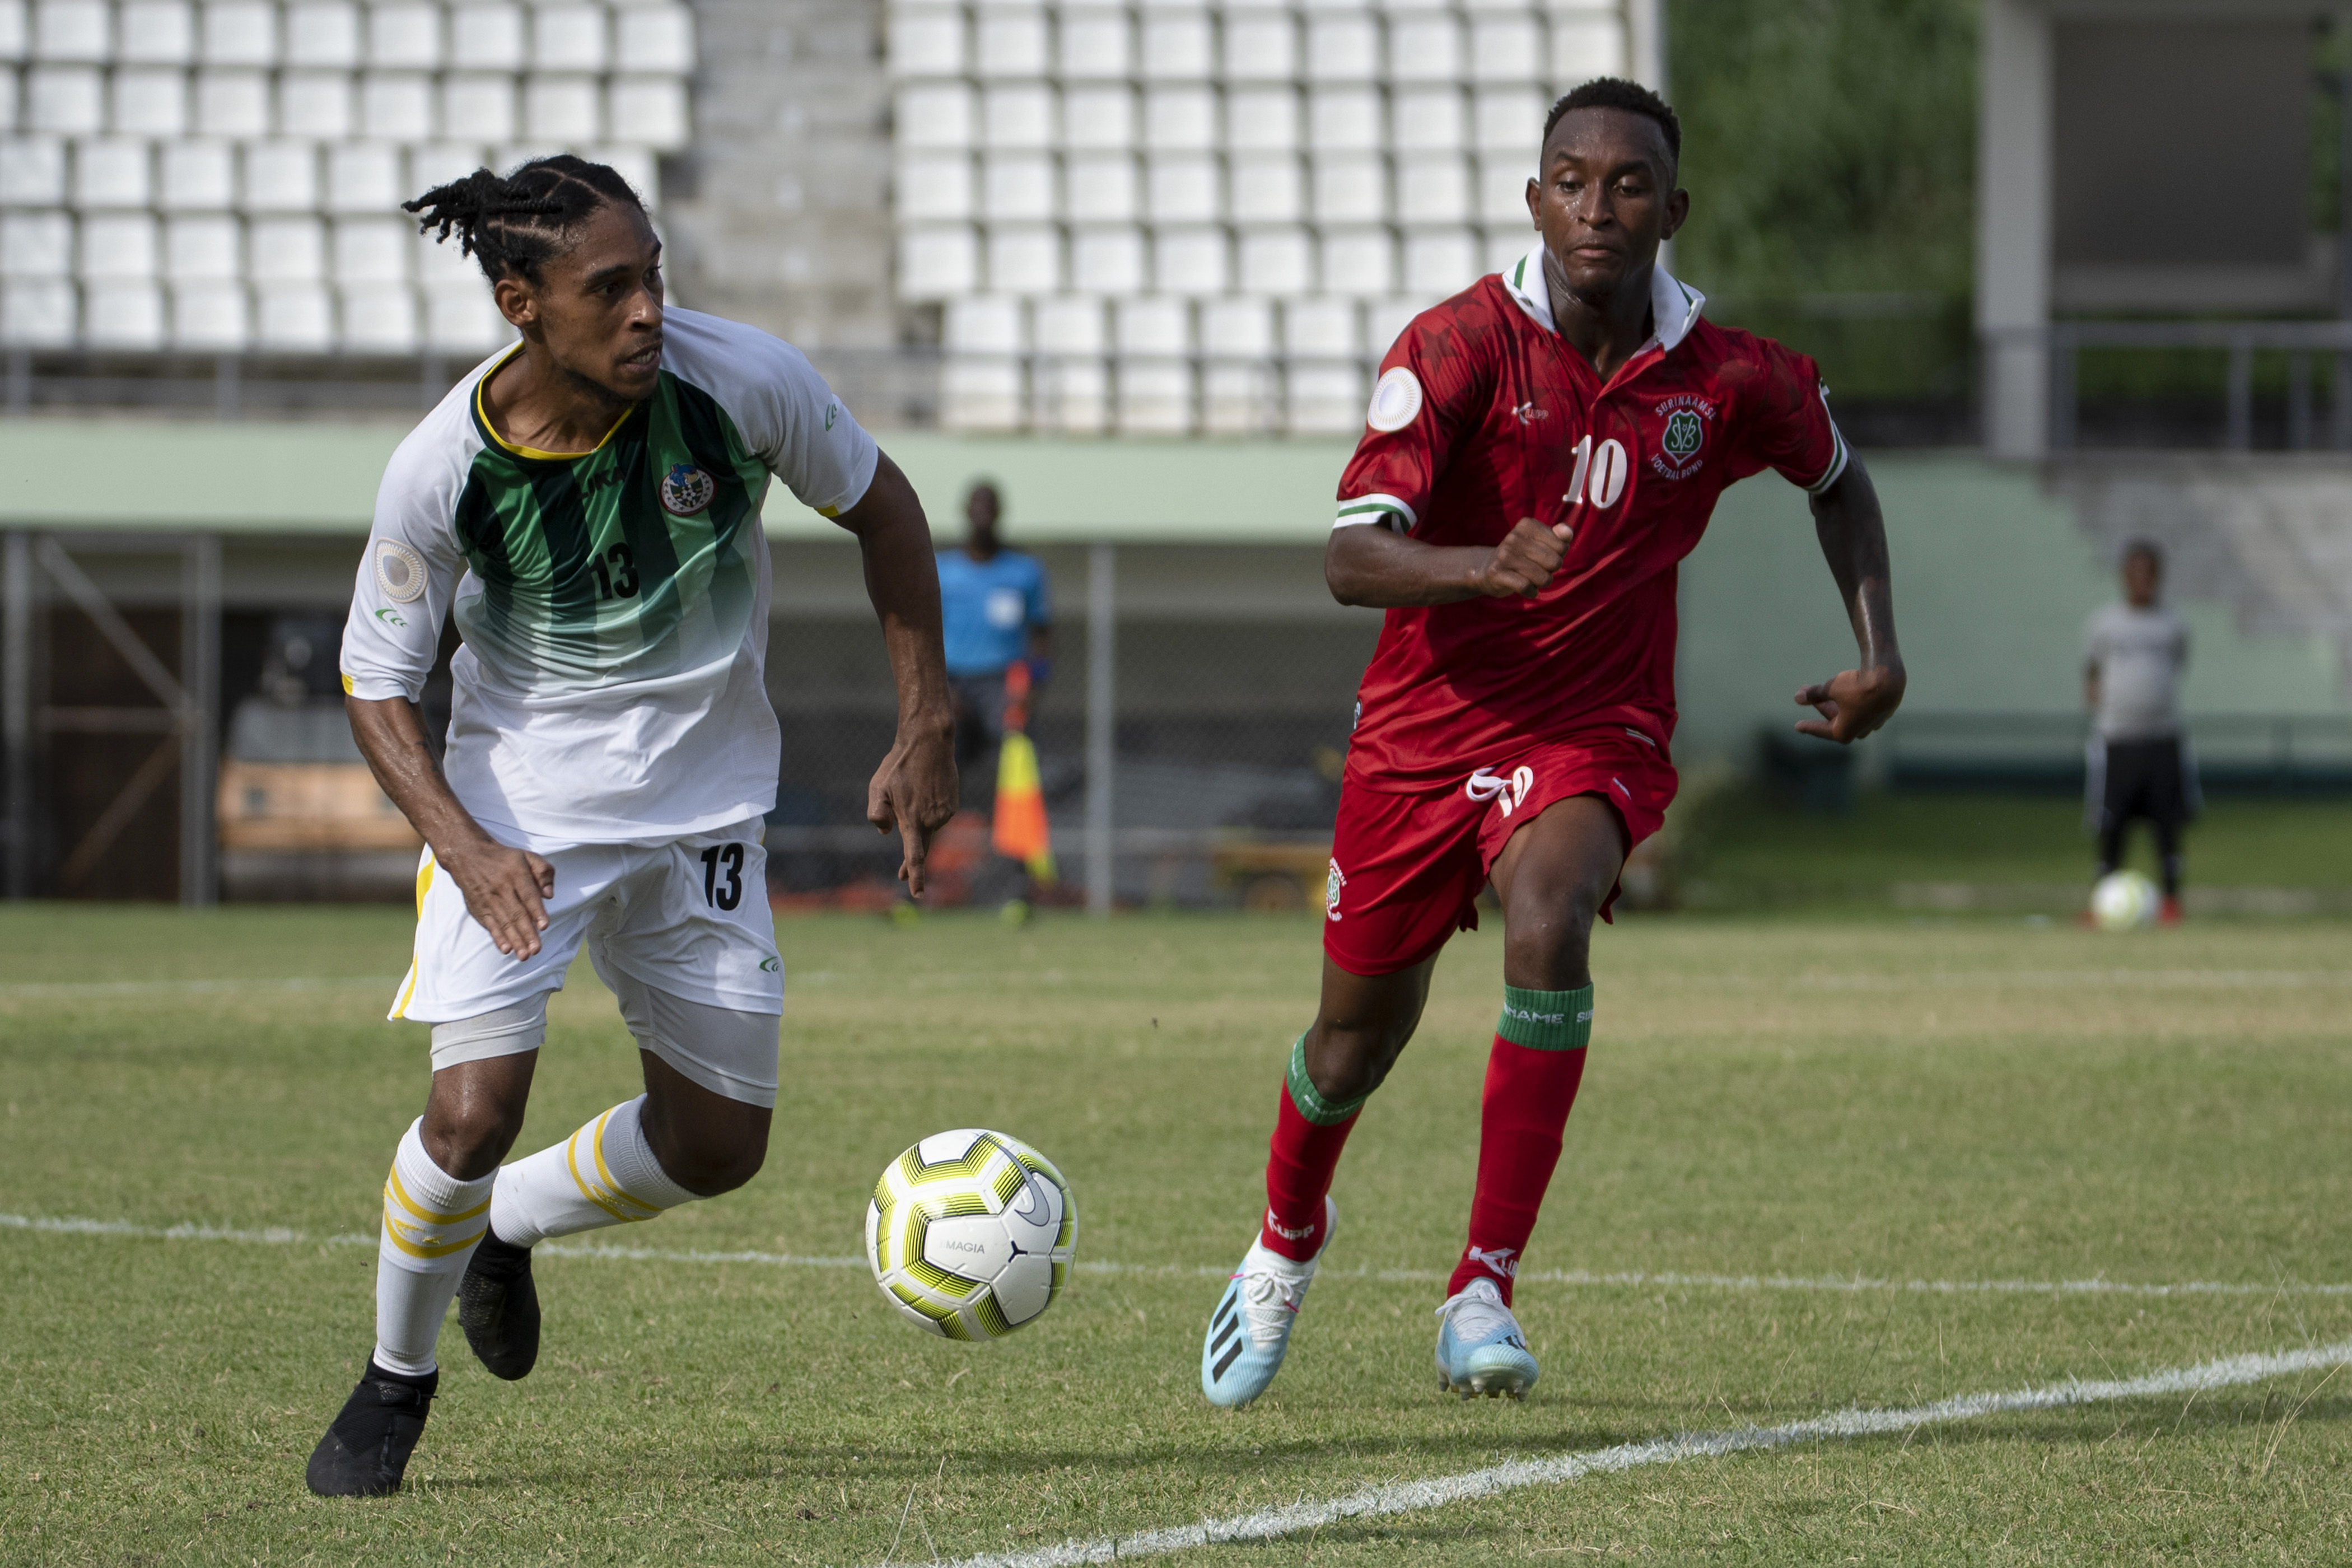 Suriname look to reclaim top spot in group against Dominica